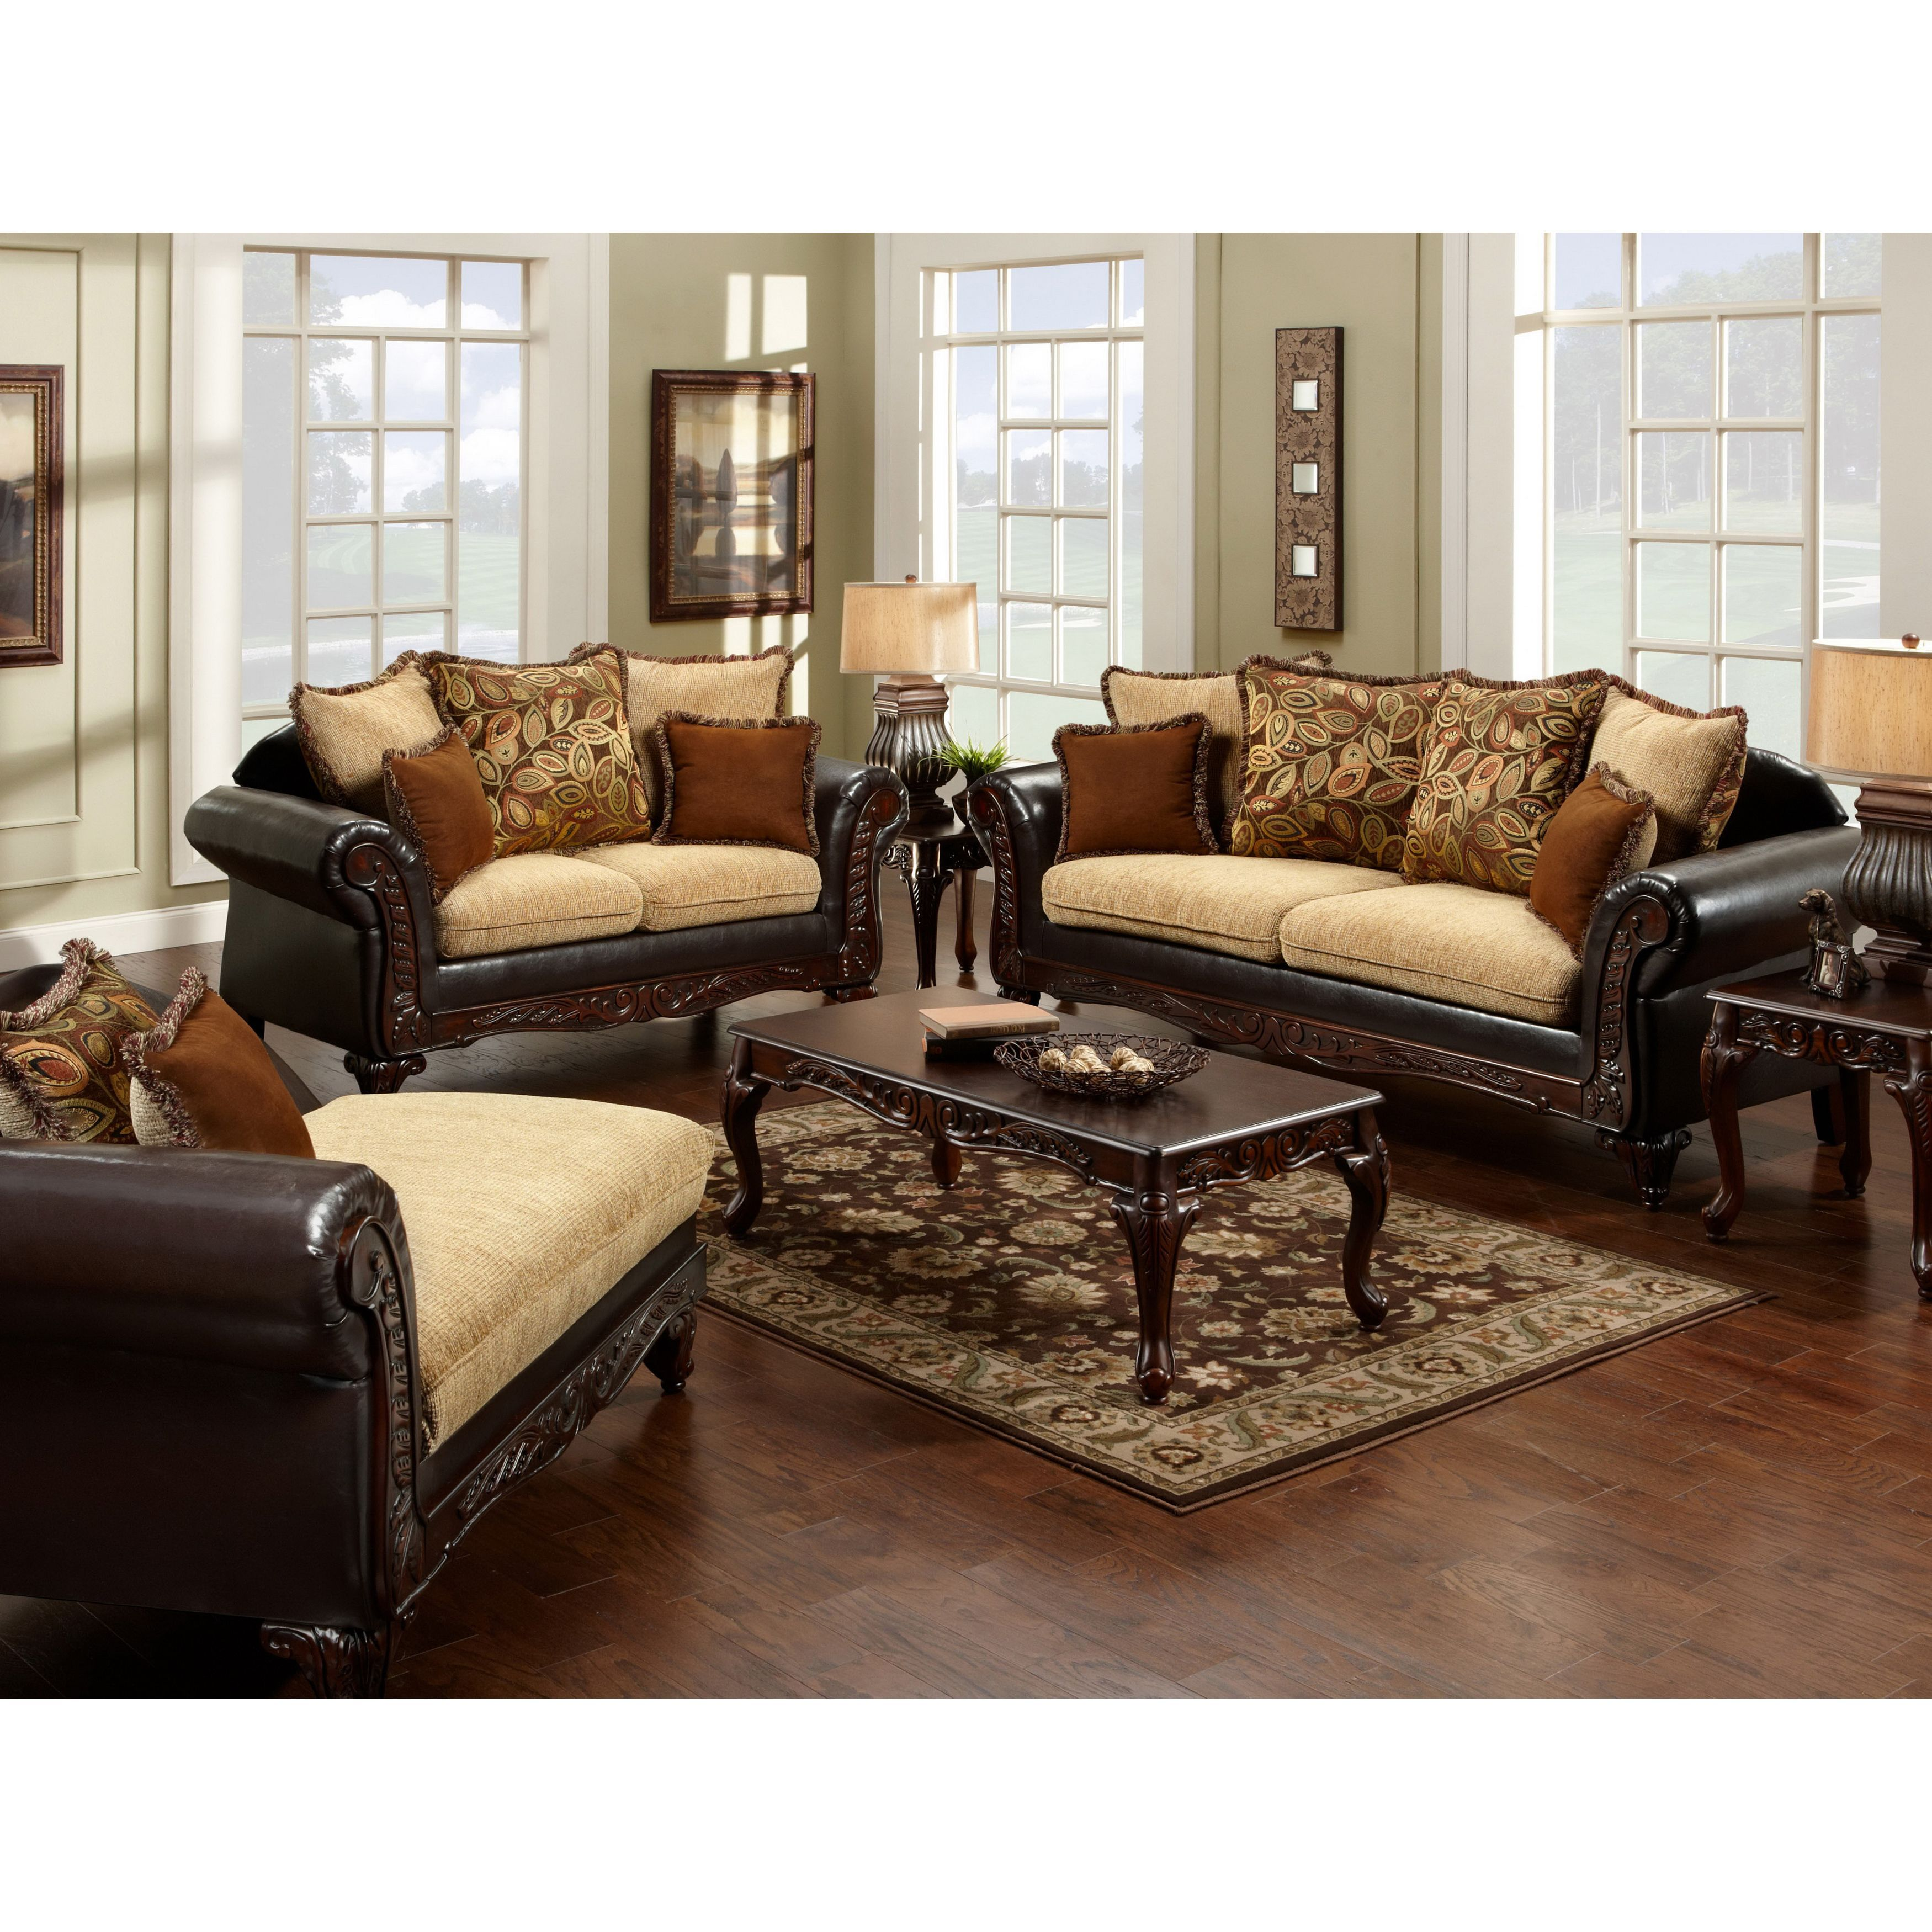 Best Furniture Of America Nicolai 2 Piece Sofa Set Light 640 x 480